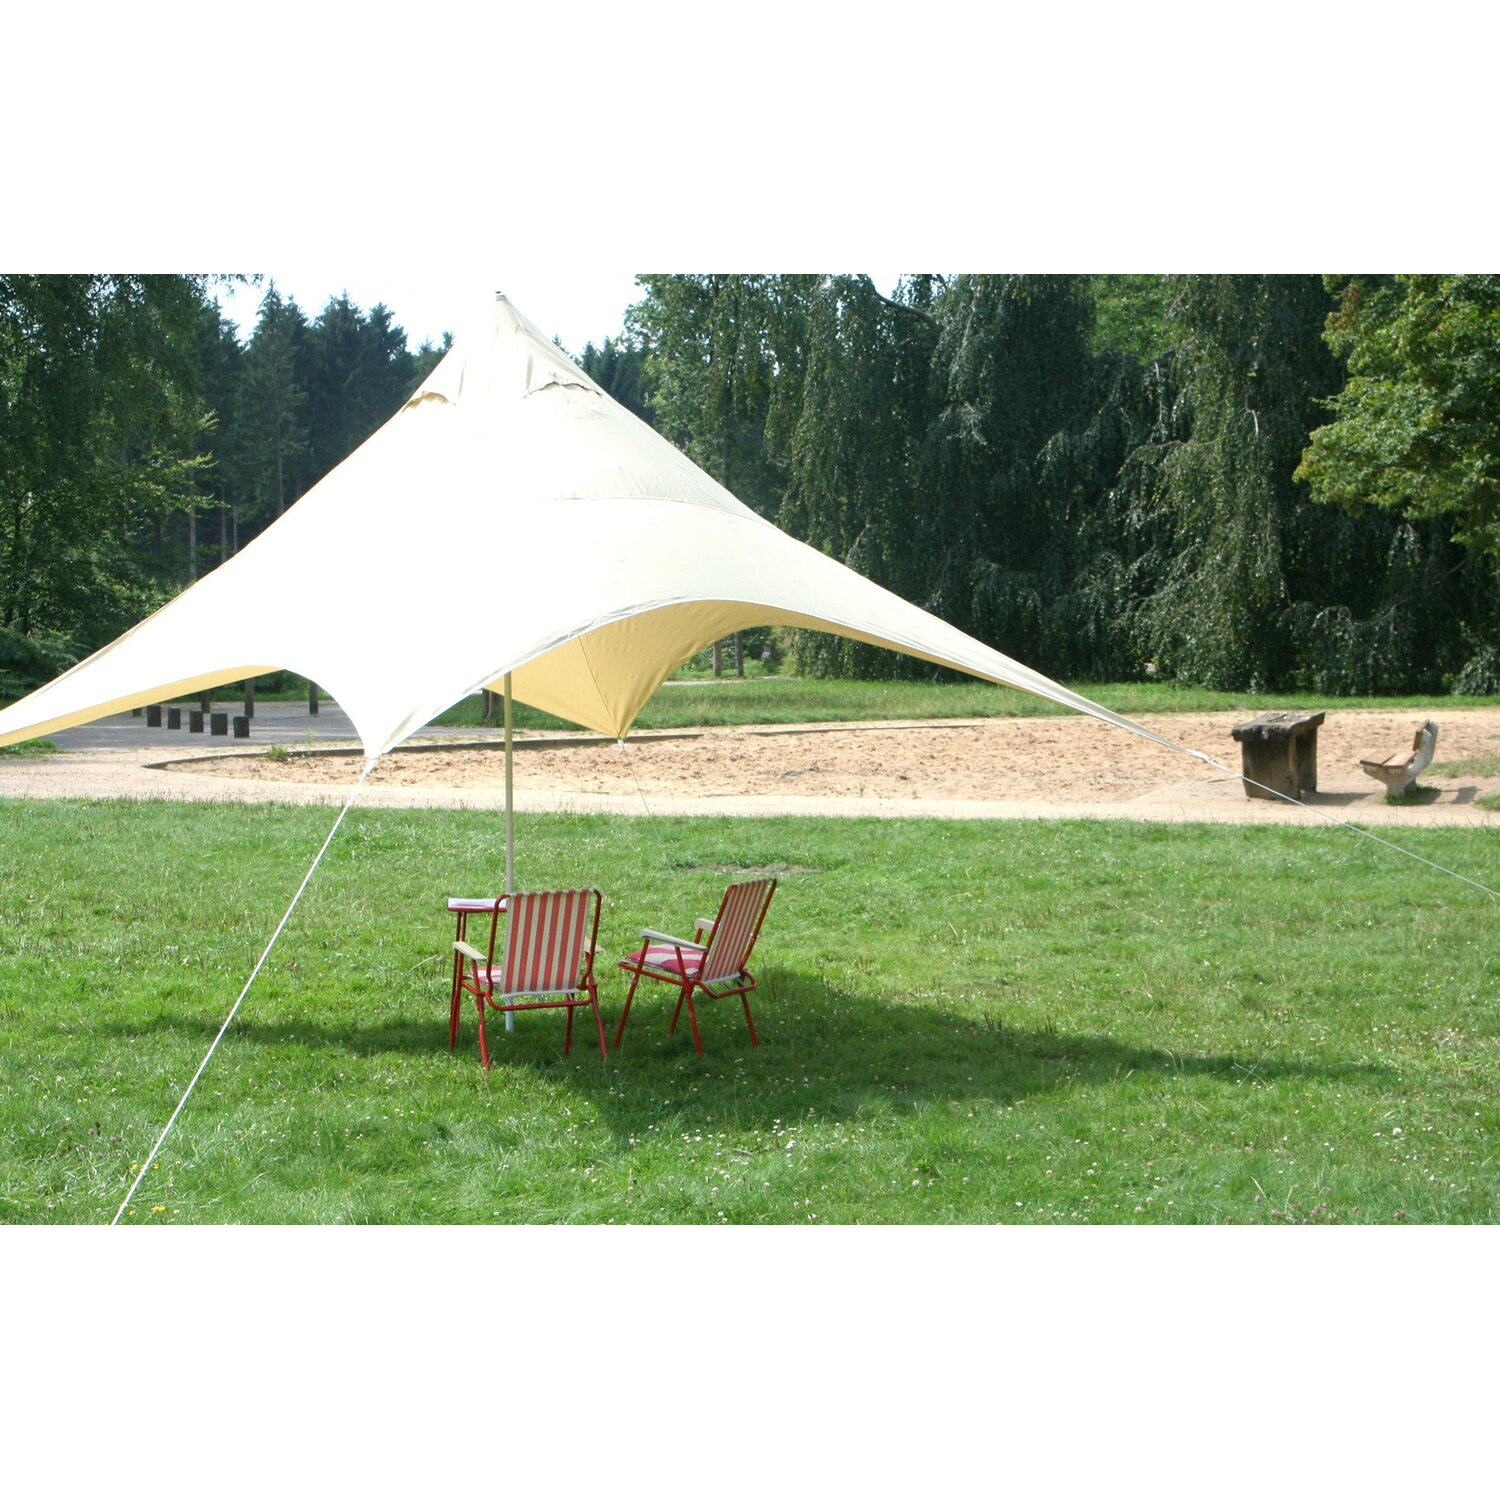 Floracord Camping Pyramiden Sonnensegel Sand 40...